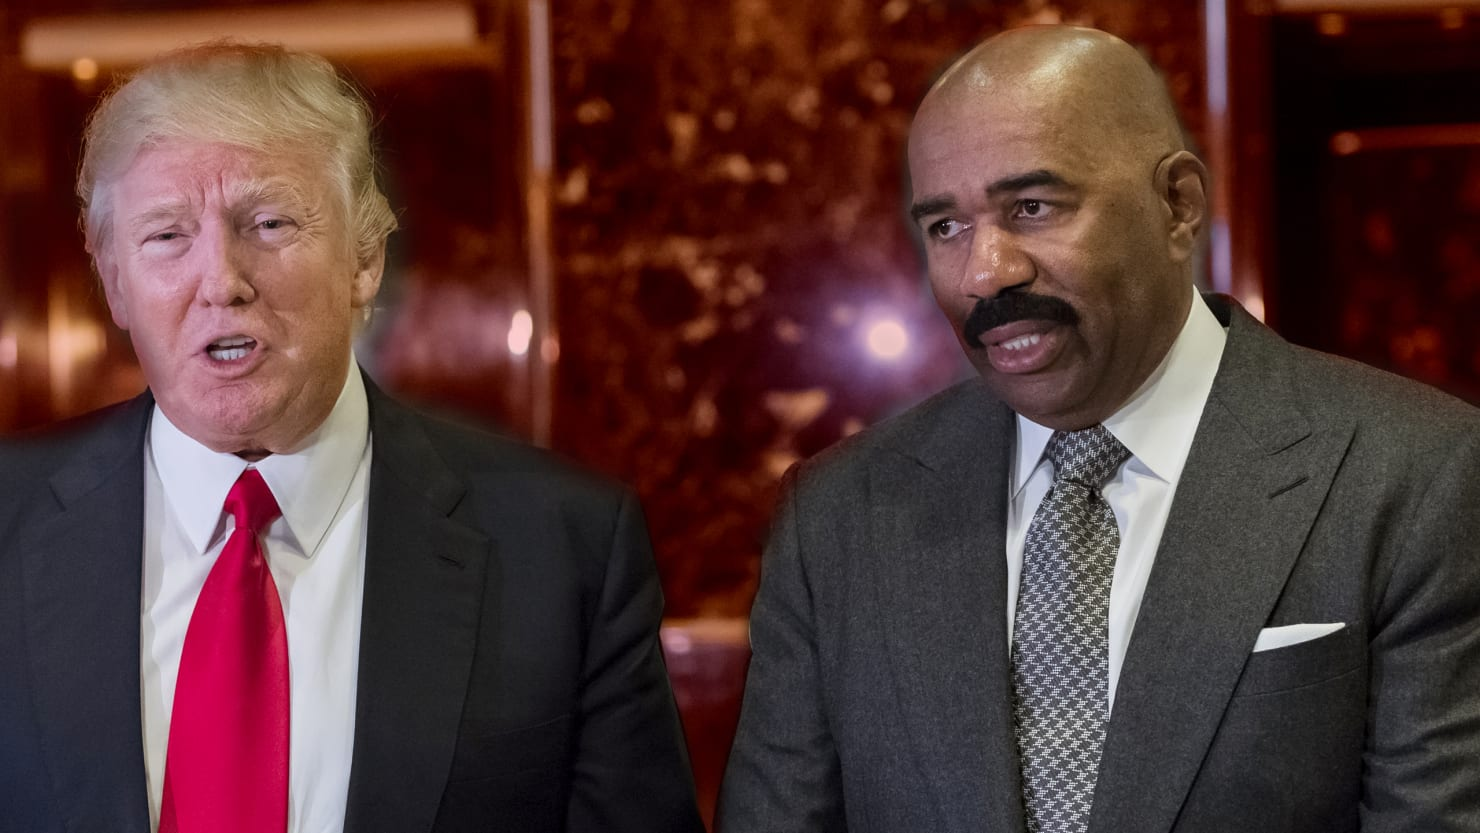 oh so now steve harvey is sorry for cozying up to trump